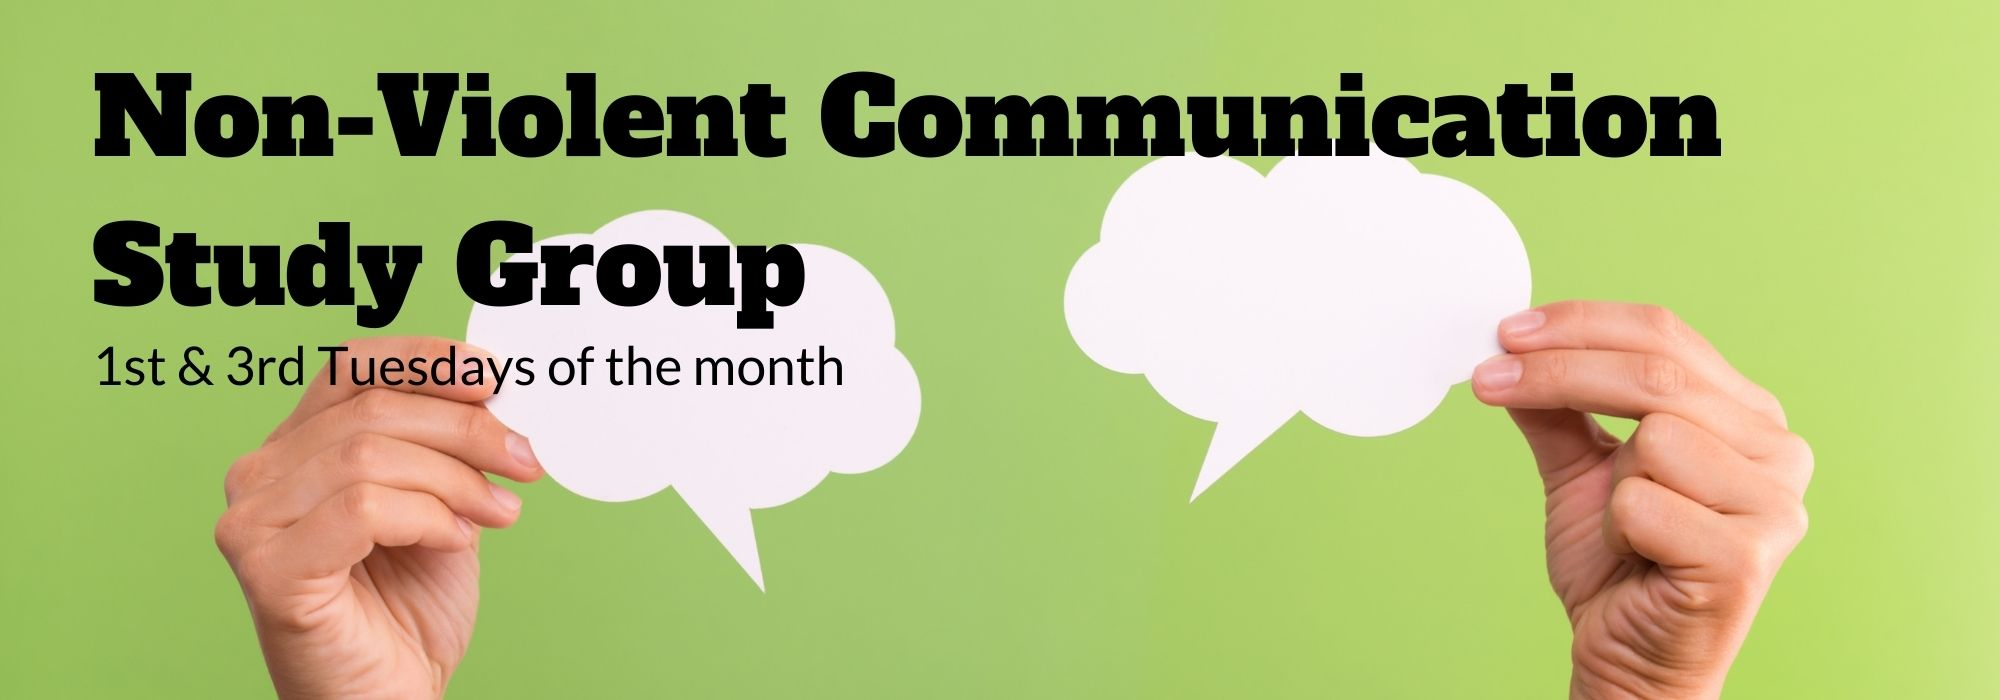 Non-Violent Communication Study Group, first and third Tuesdays of the month